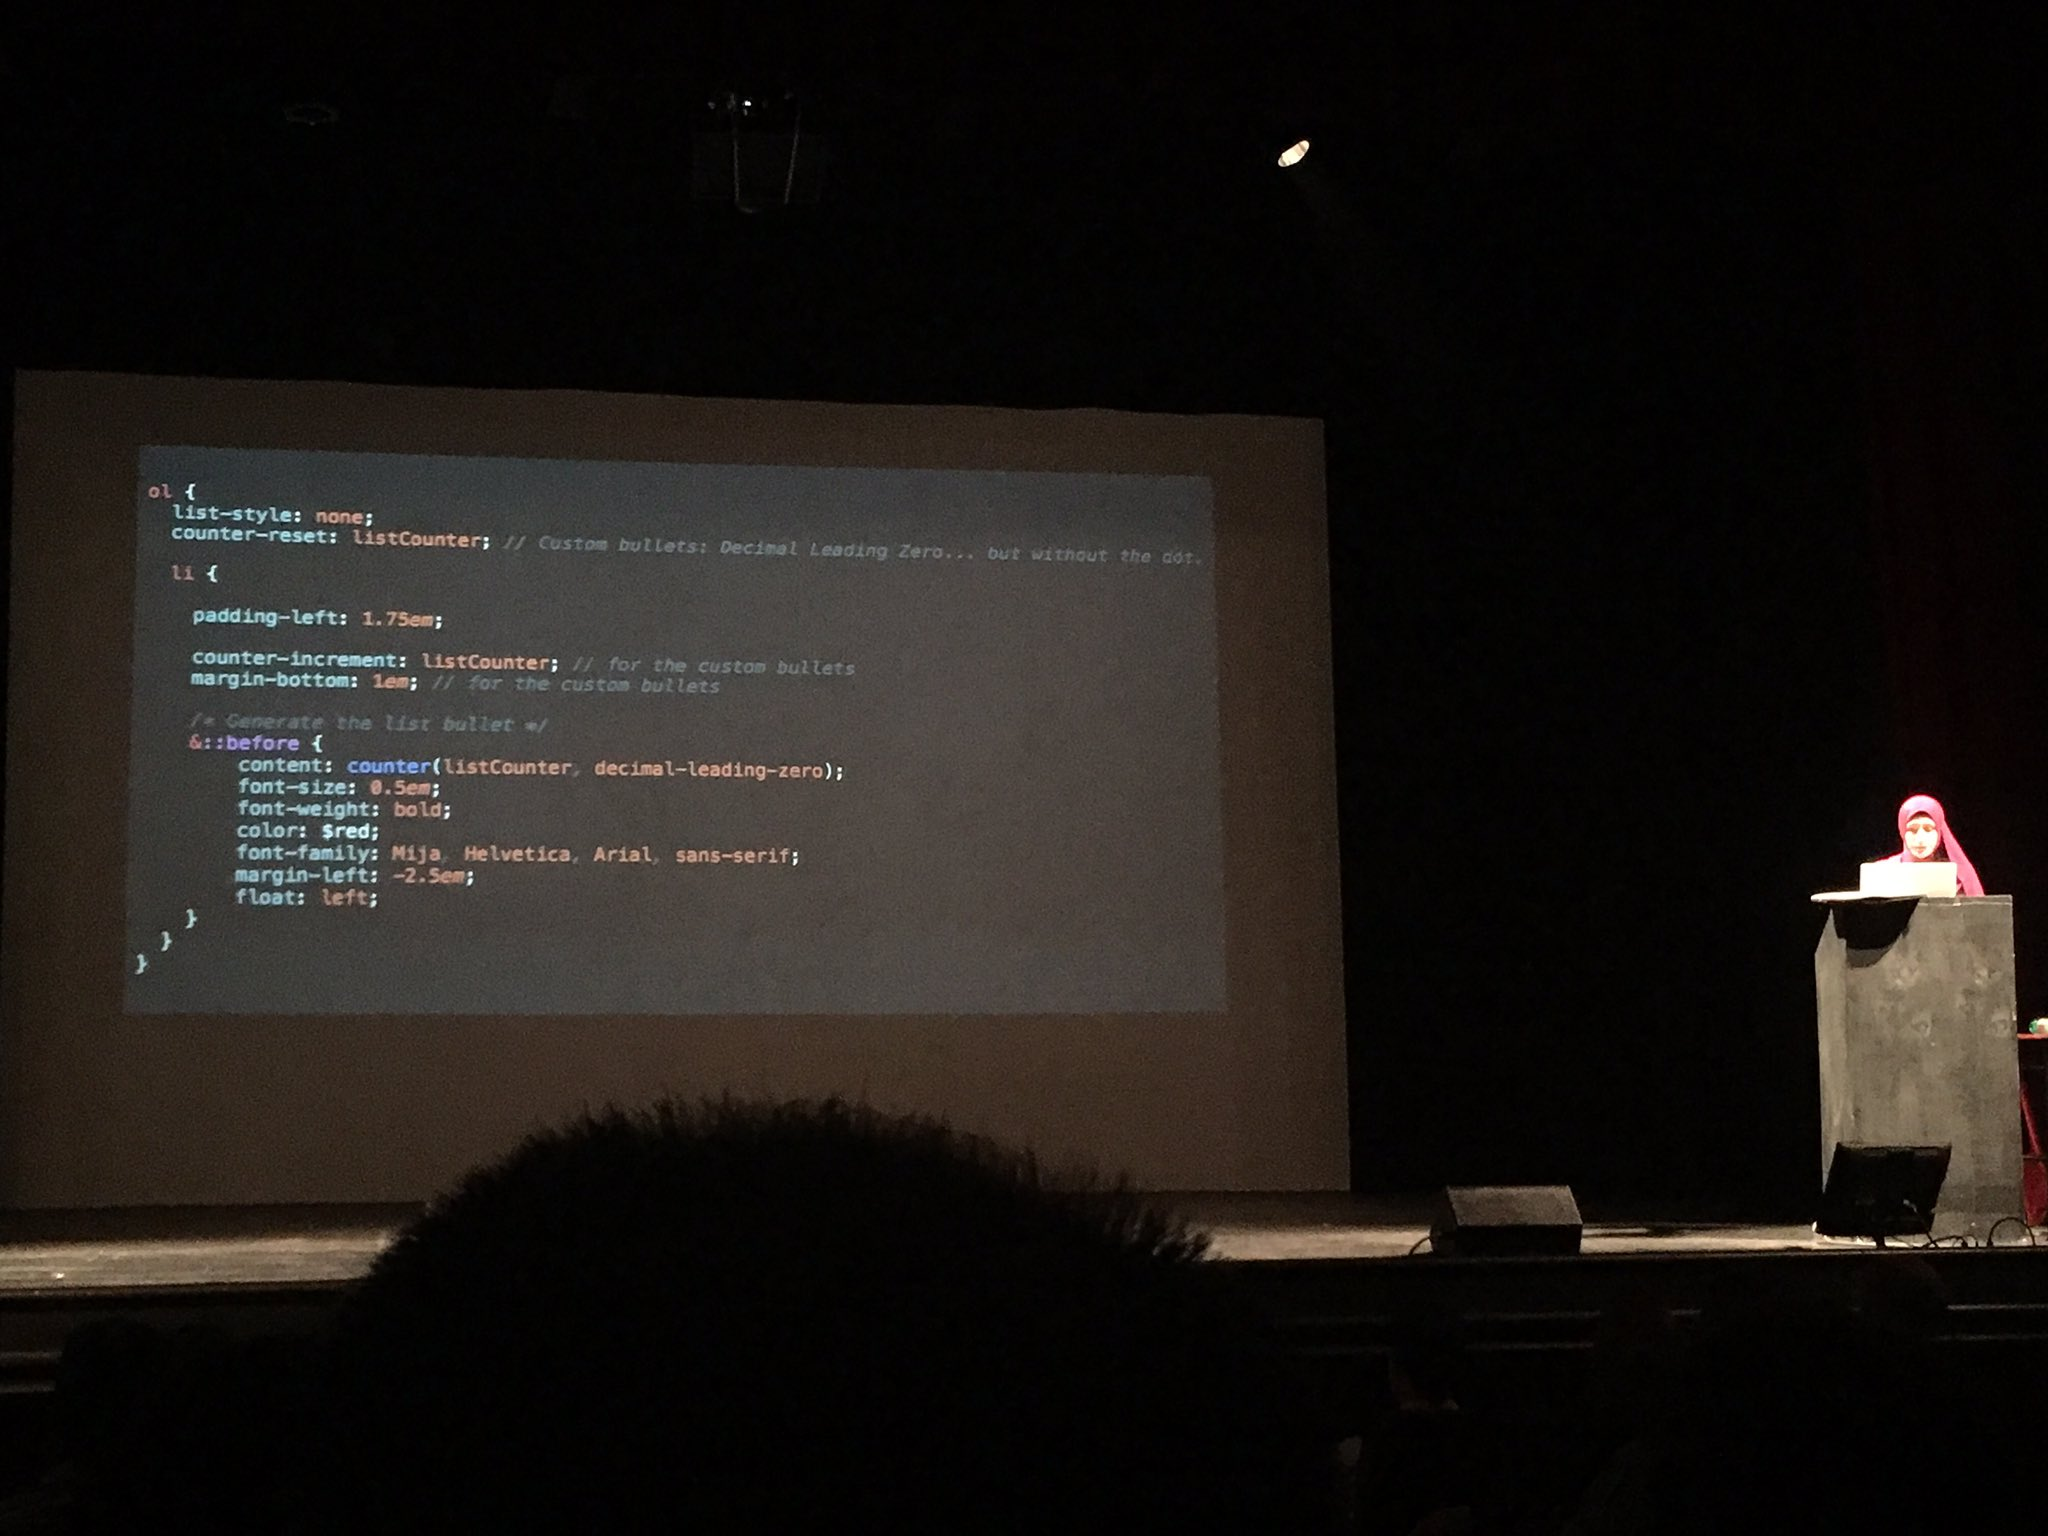 I didn't see that coming! Css counters by @SaraSoueidan @fromthefront. Never seen that before #ftf16 https://t.co/Uhtov1ceX3